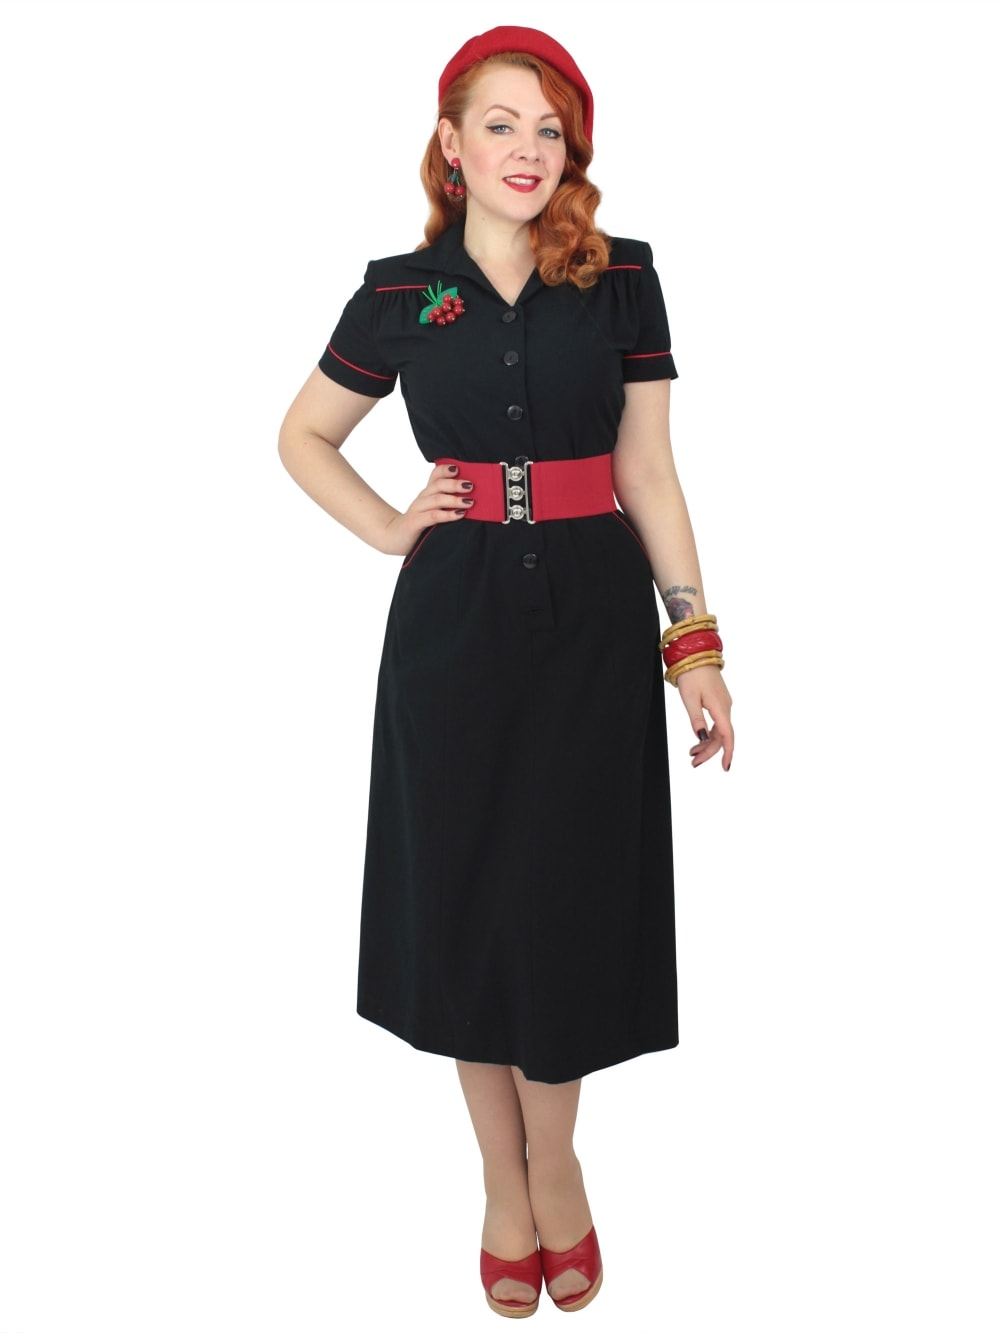 1940s Fashions In Red White Blue With Images: 1940s Style Tea Dress Black Red Piping From Vivien Of Holloway